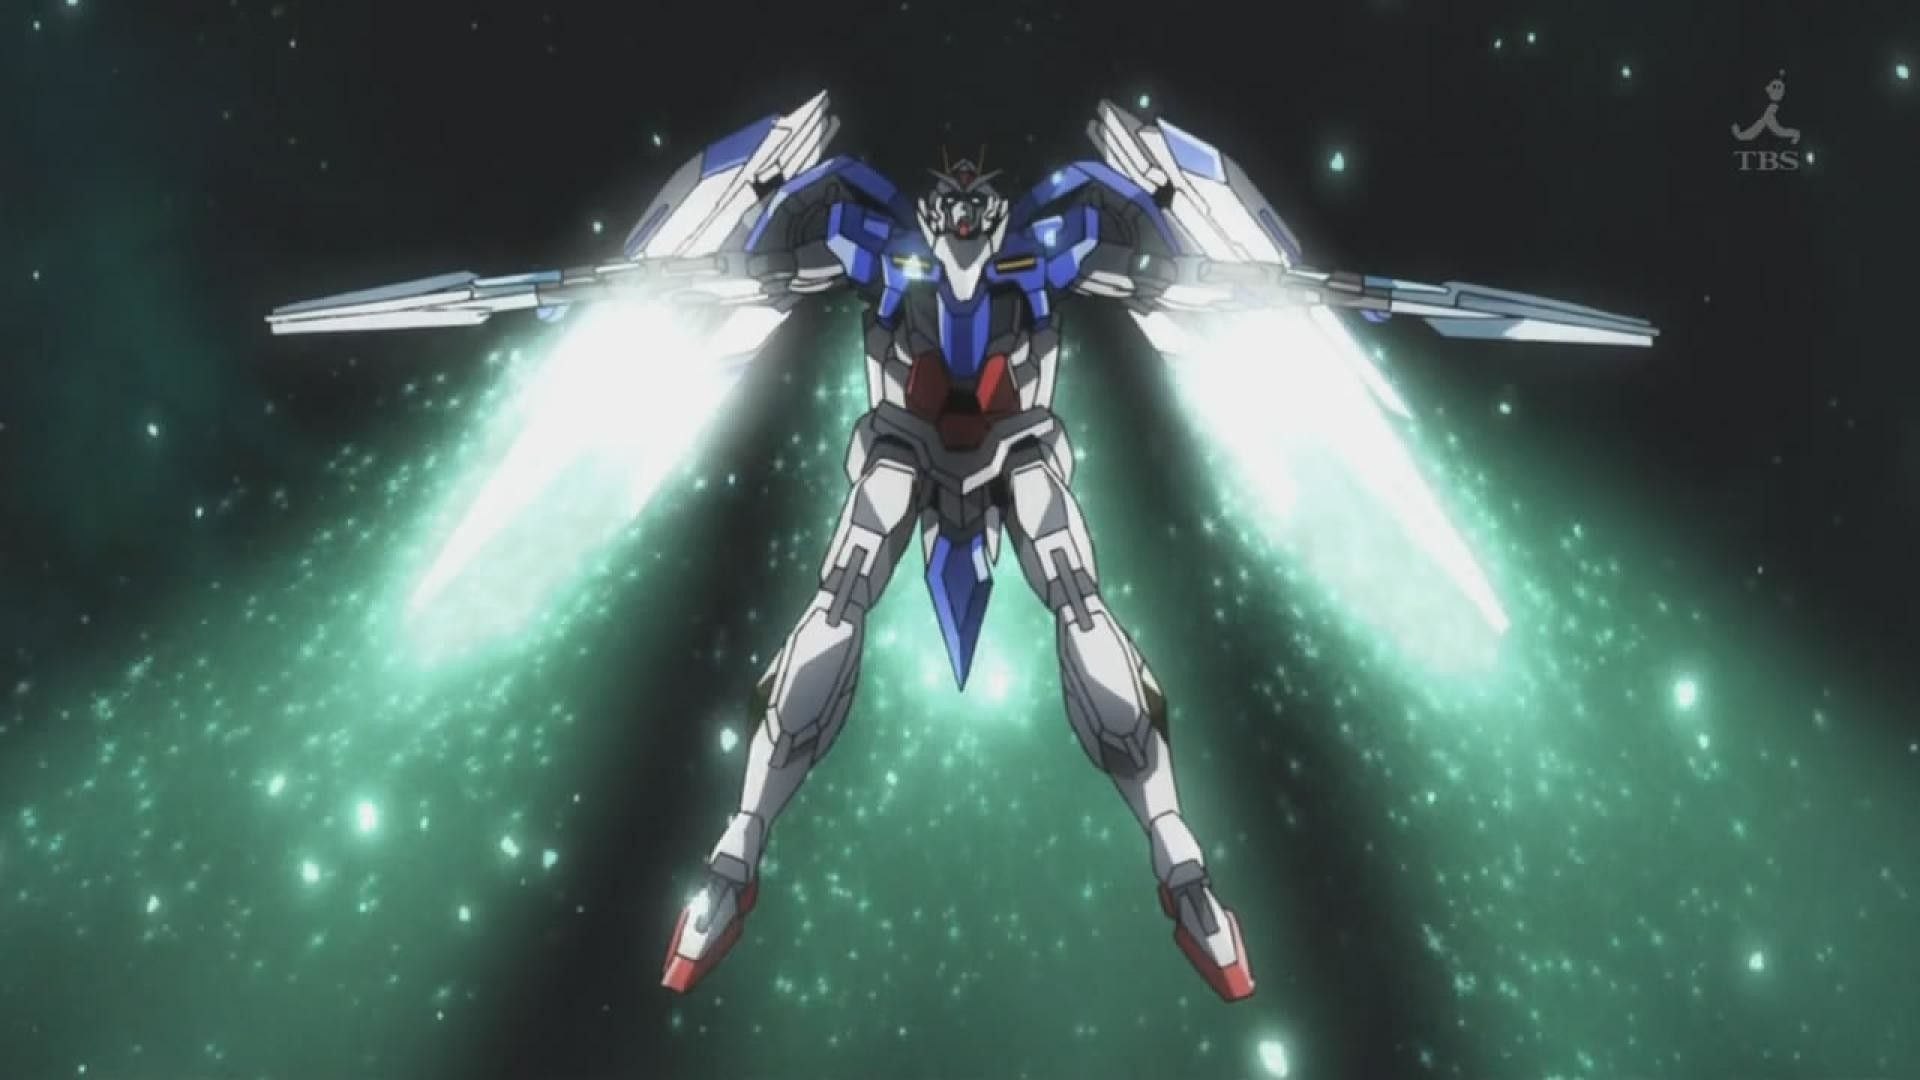 Gundam 00 Hd Wallpaper Posted By John Walker